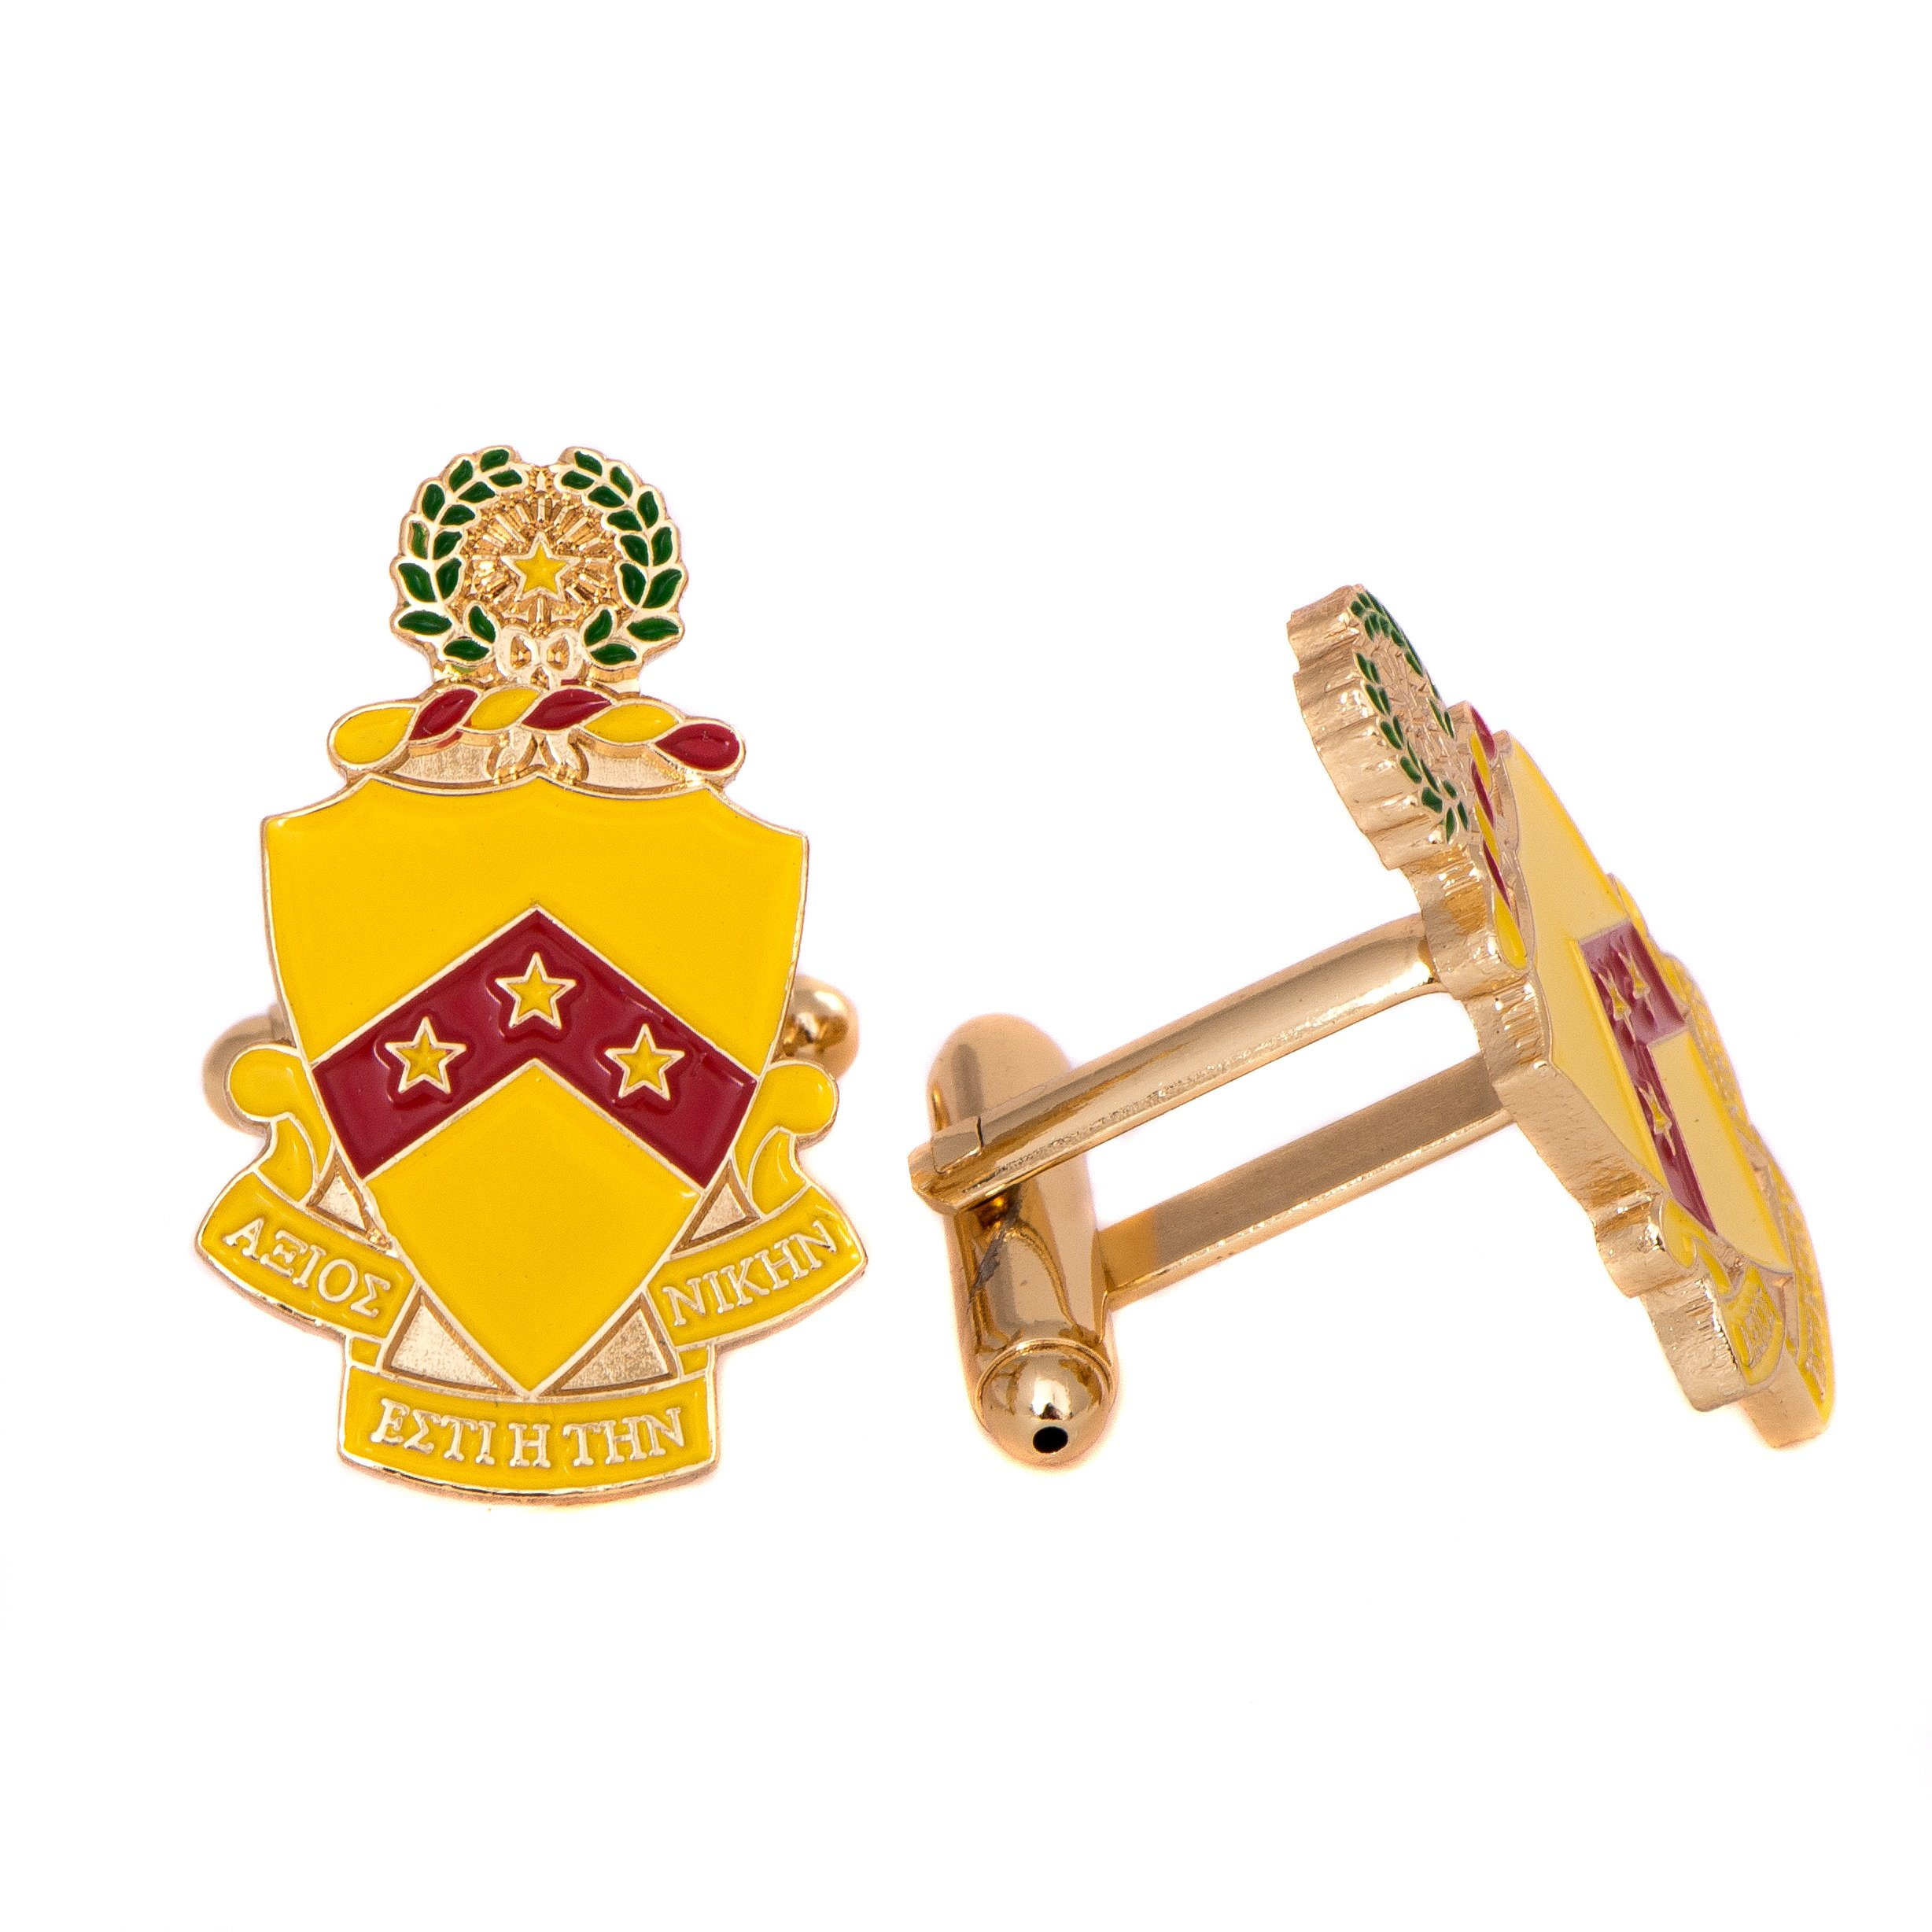 Desert Cactus Phi Kappa Tau Fraternity Crest Cufflinks Greek Formal Wear Blazer Jacket